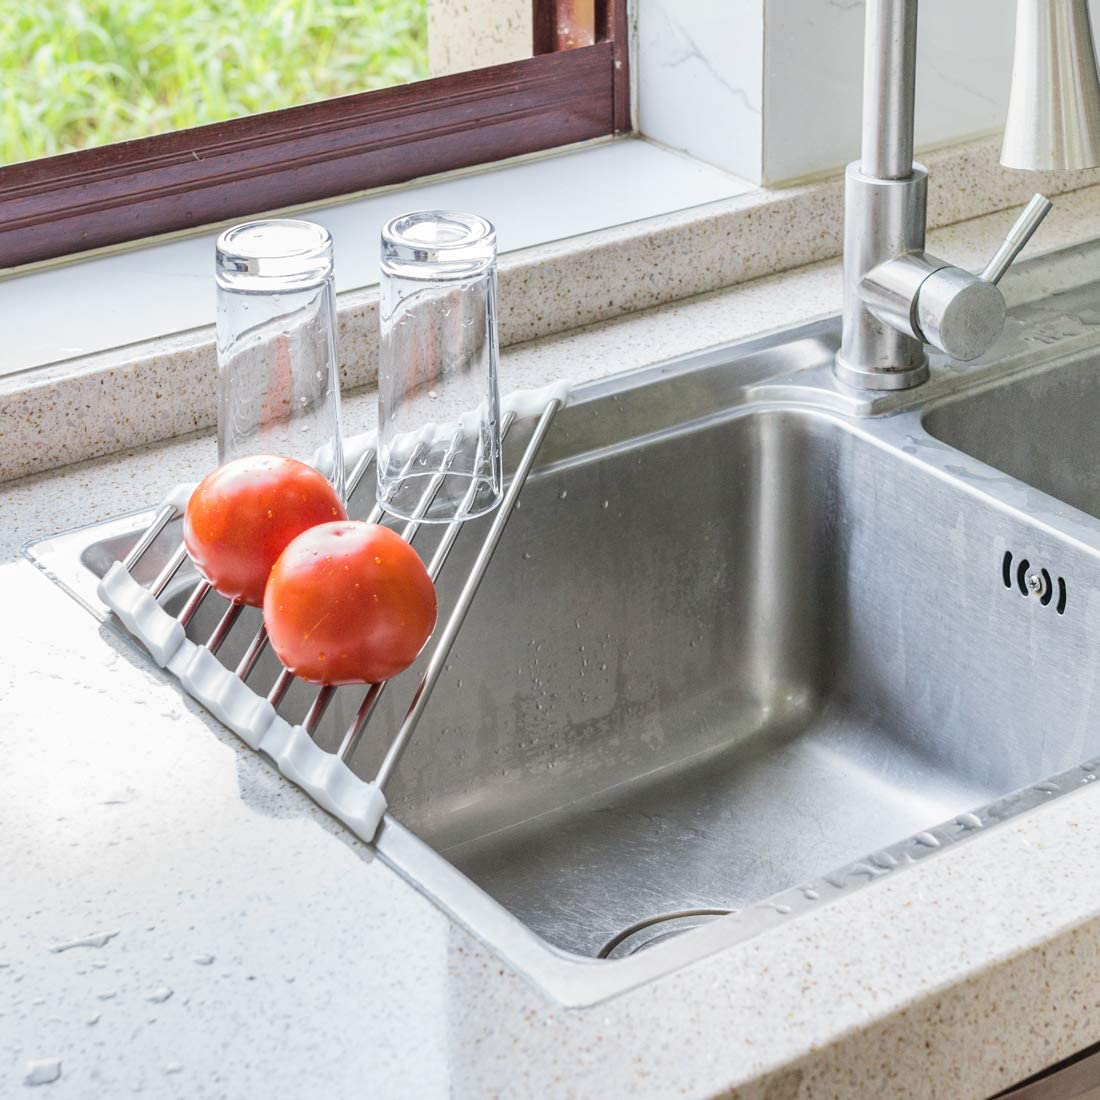 Amazon Com Roll Up Dish Drying Rack For Sink Corner Triangle Heavy Duty Heat Resistant Over The Sink Drying Rack Roll Up Drainer Mat With White Silicone Grips And Stainless Steel Pipes 17 5x9 2